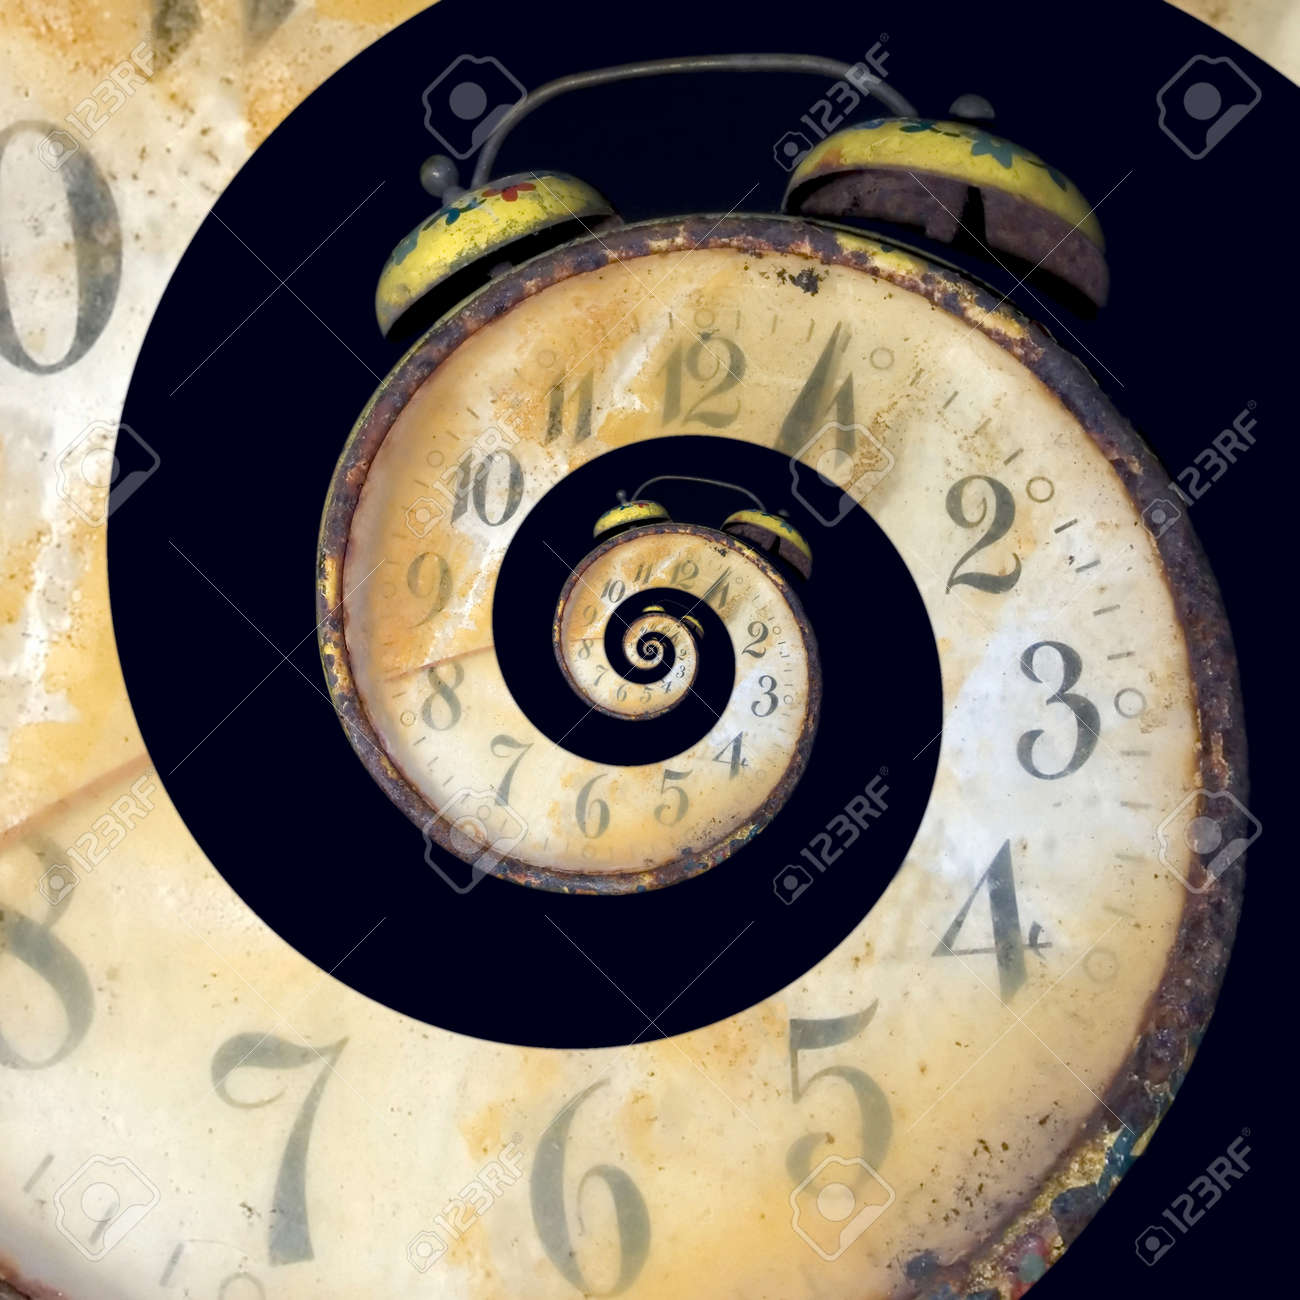 Conceptual Image of Endless Time Passing Standard-Bild - 14174434